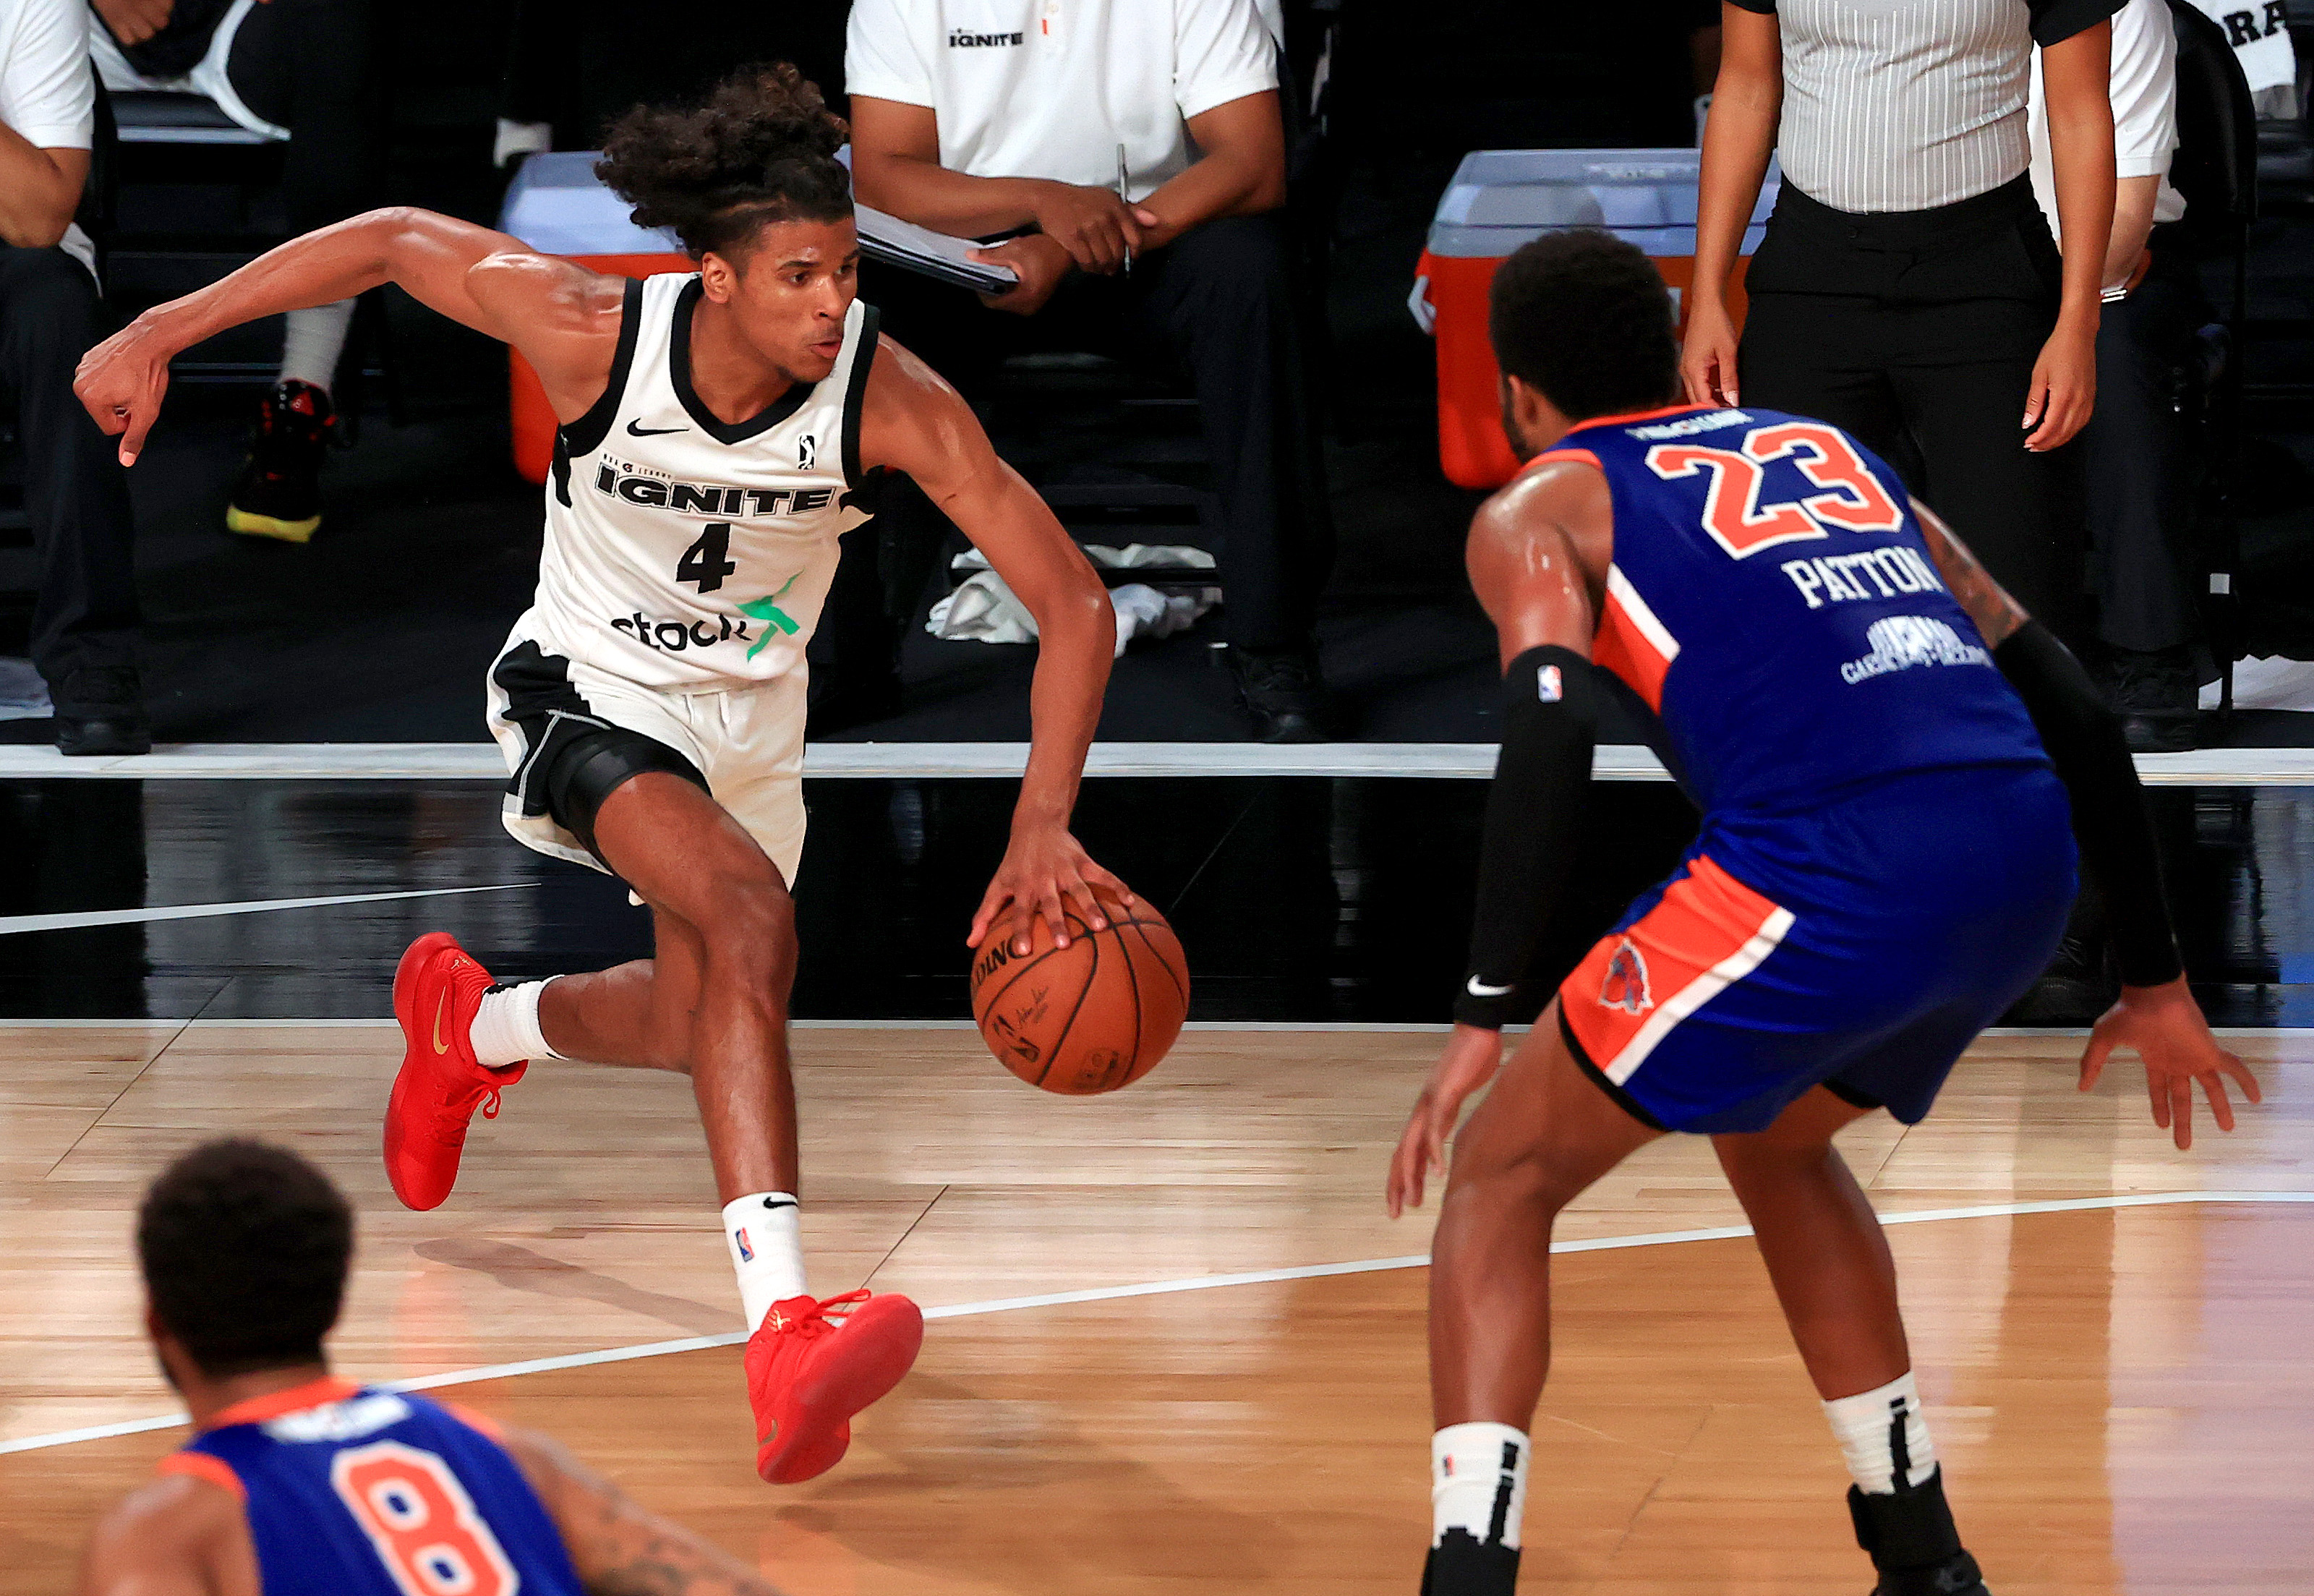 LAKE BUENA VISTA, FLORIDA - FEBRUARY 18: Jalen Green #4 of the G League Ignite drives to the basket during a G-League game against the Westchester Knicks at AdventHealth Arena at ESPN Wide World Of Sports Complex on February 18, 2021 in Lake Buena Vista, Florida.